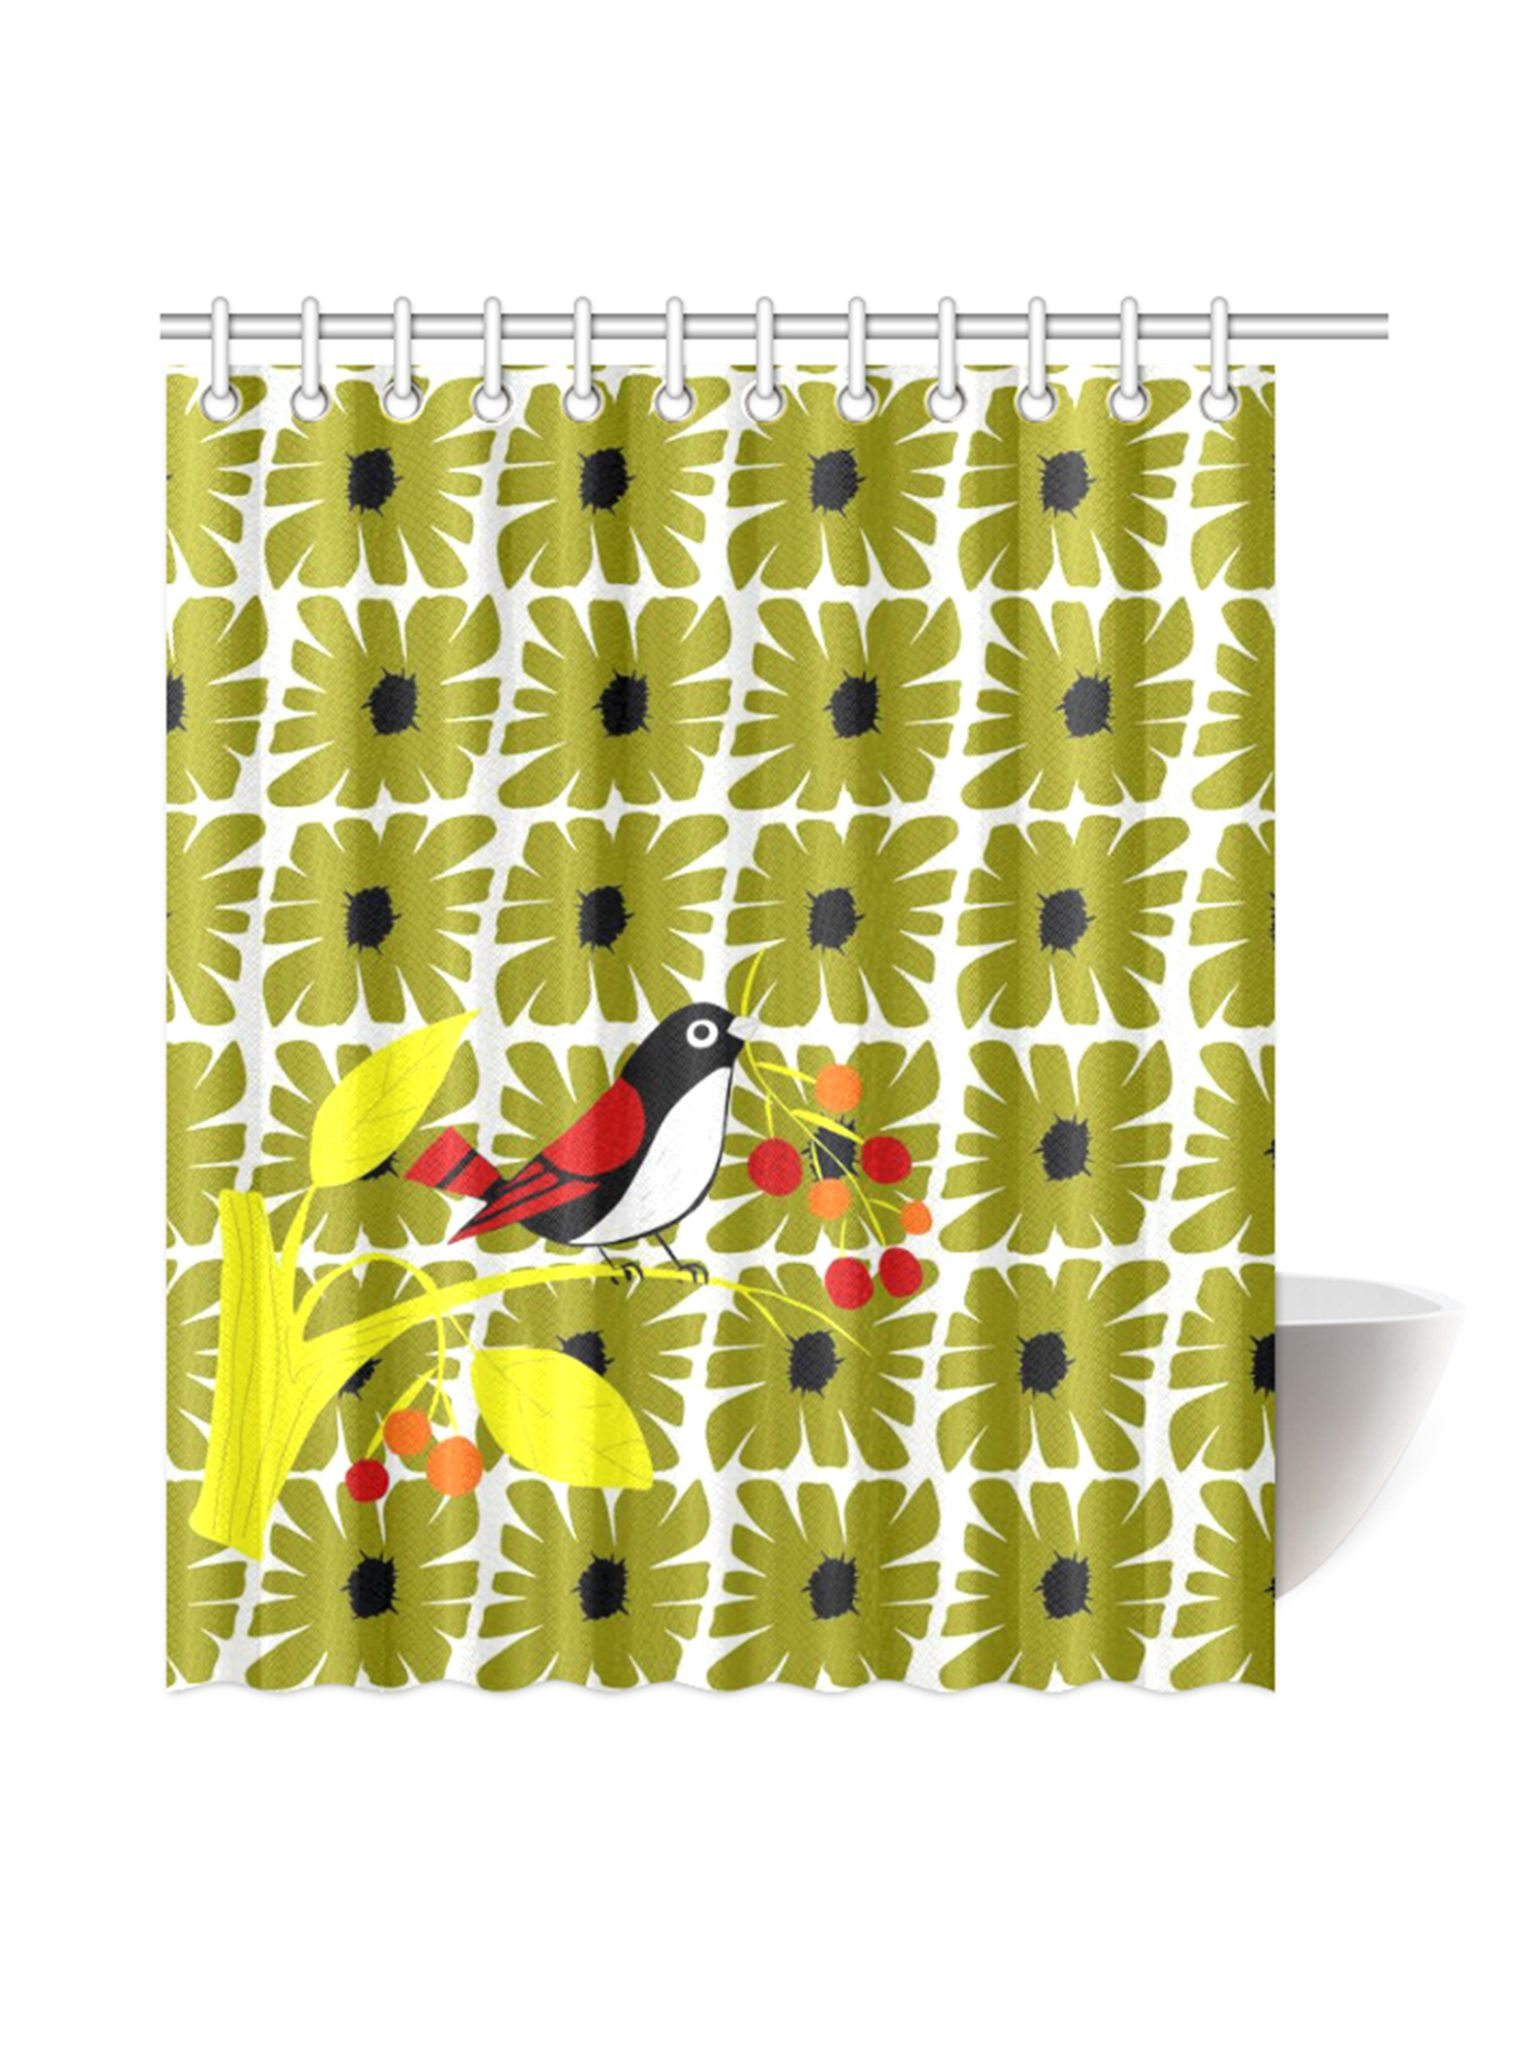 dp chirp fine home shower bird amazon curtains simply lenox multi curtain com color kitchen